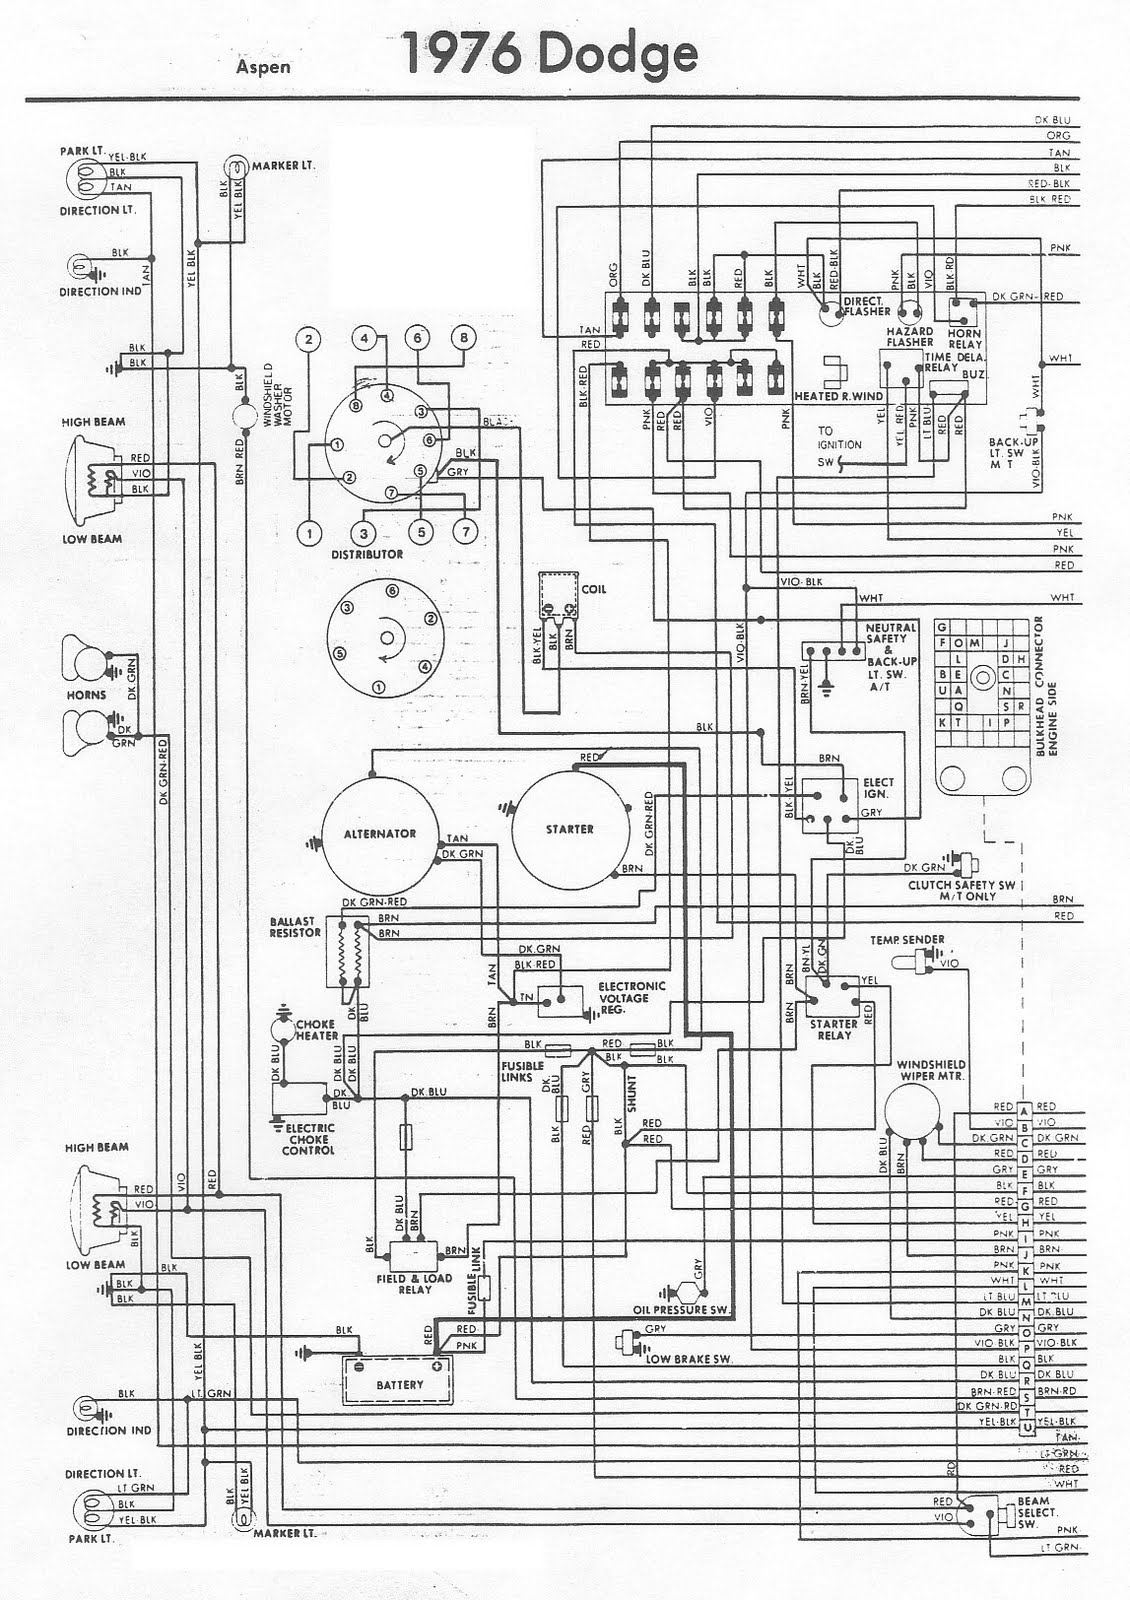 wiring diagram electrical system circuit 1976 dodge aspen